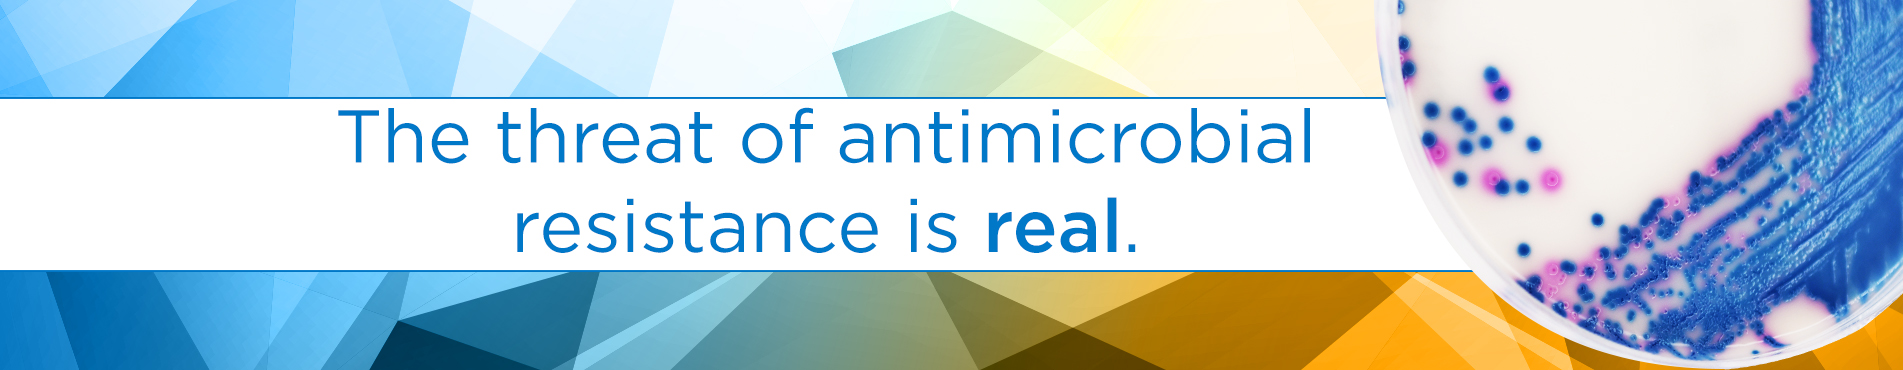 antimicrobial resistance landing page banner